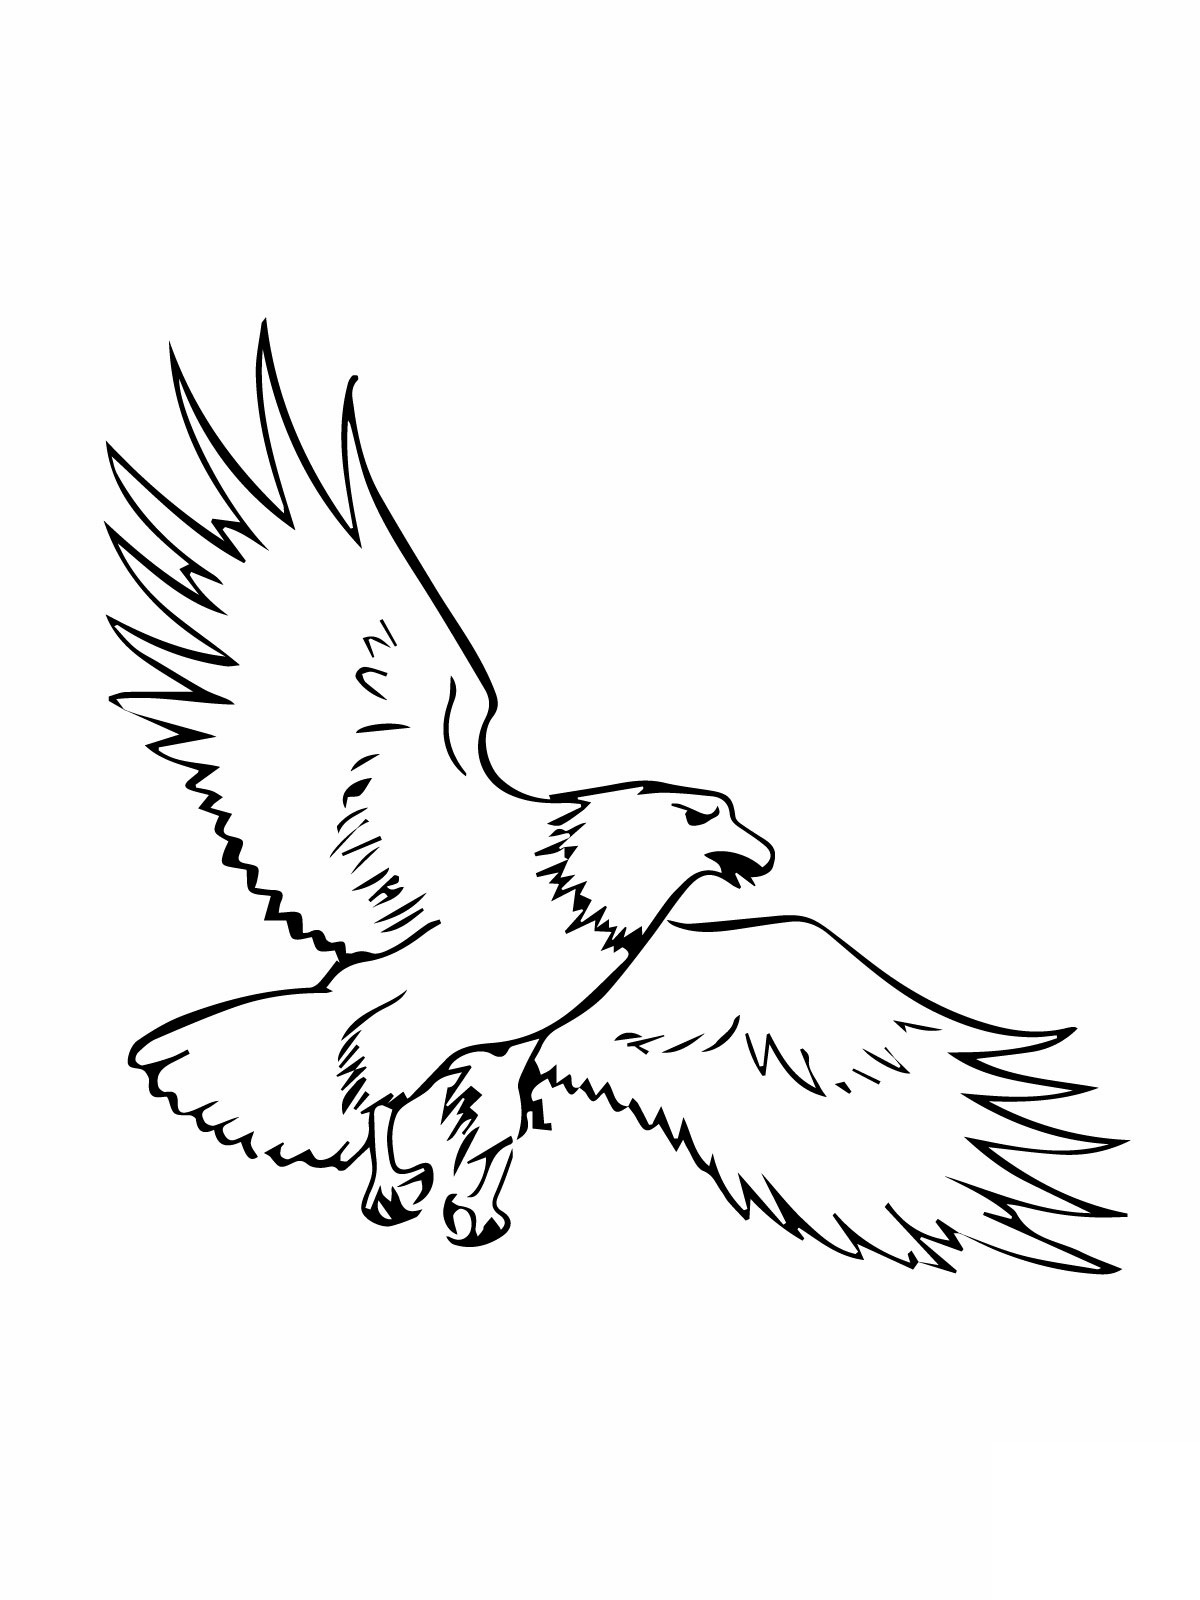 eagle coloring images free printable bald eagle coloring pages for kids eagle images coloring